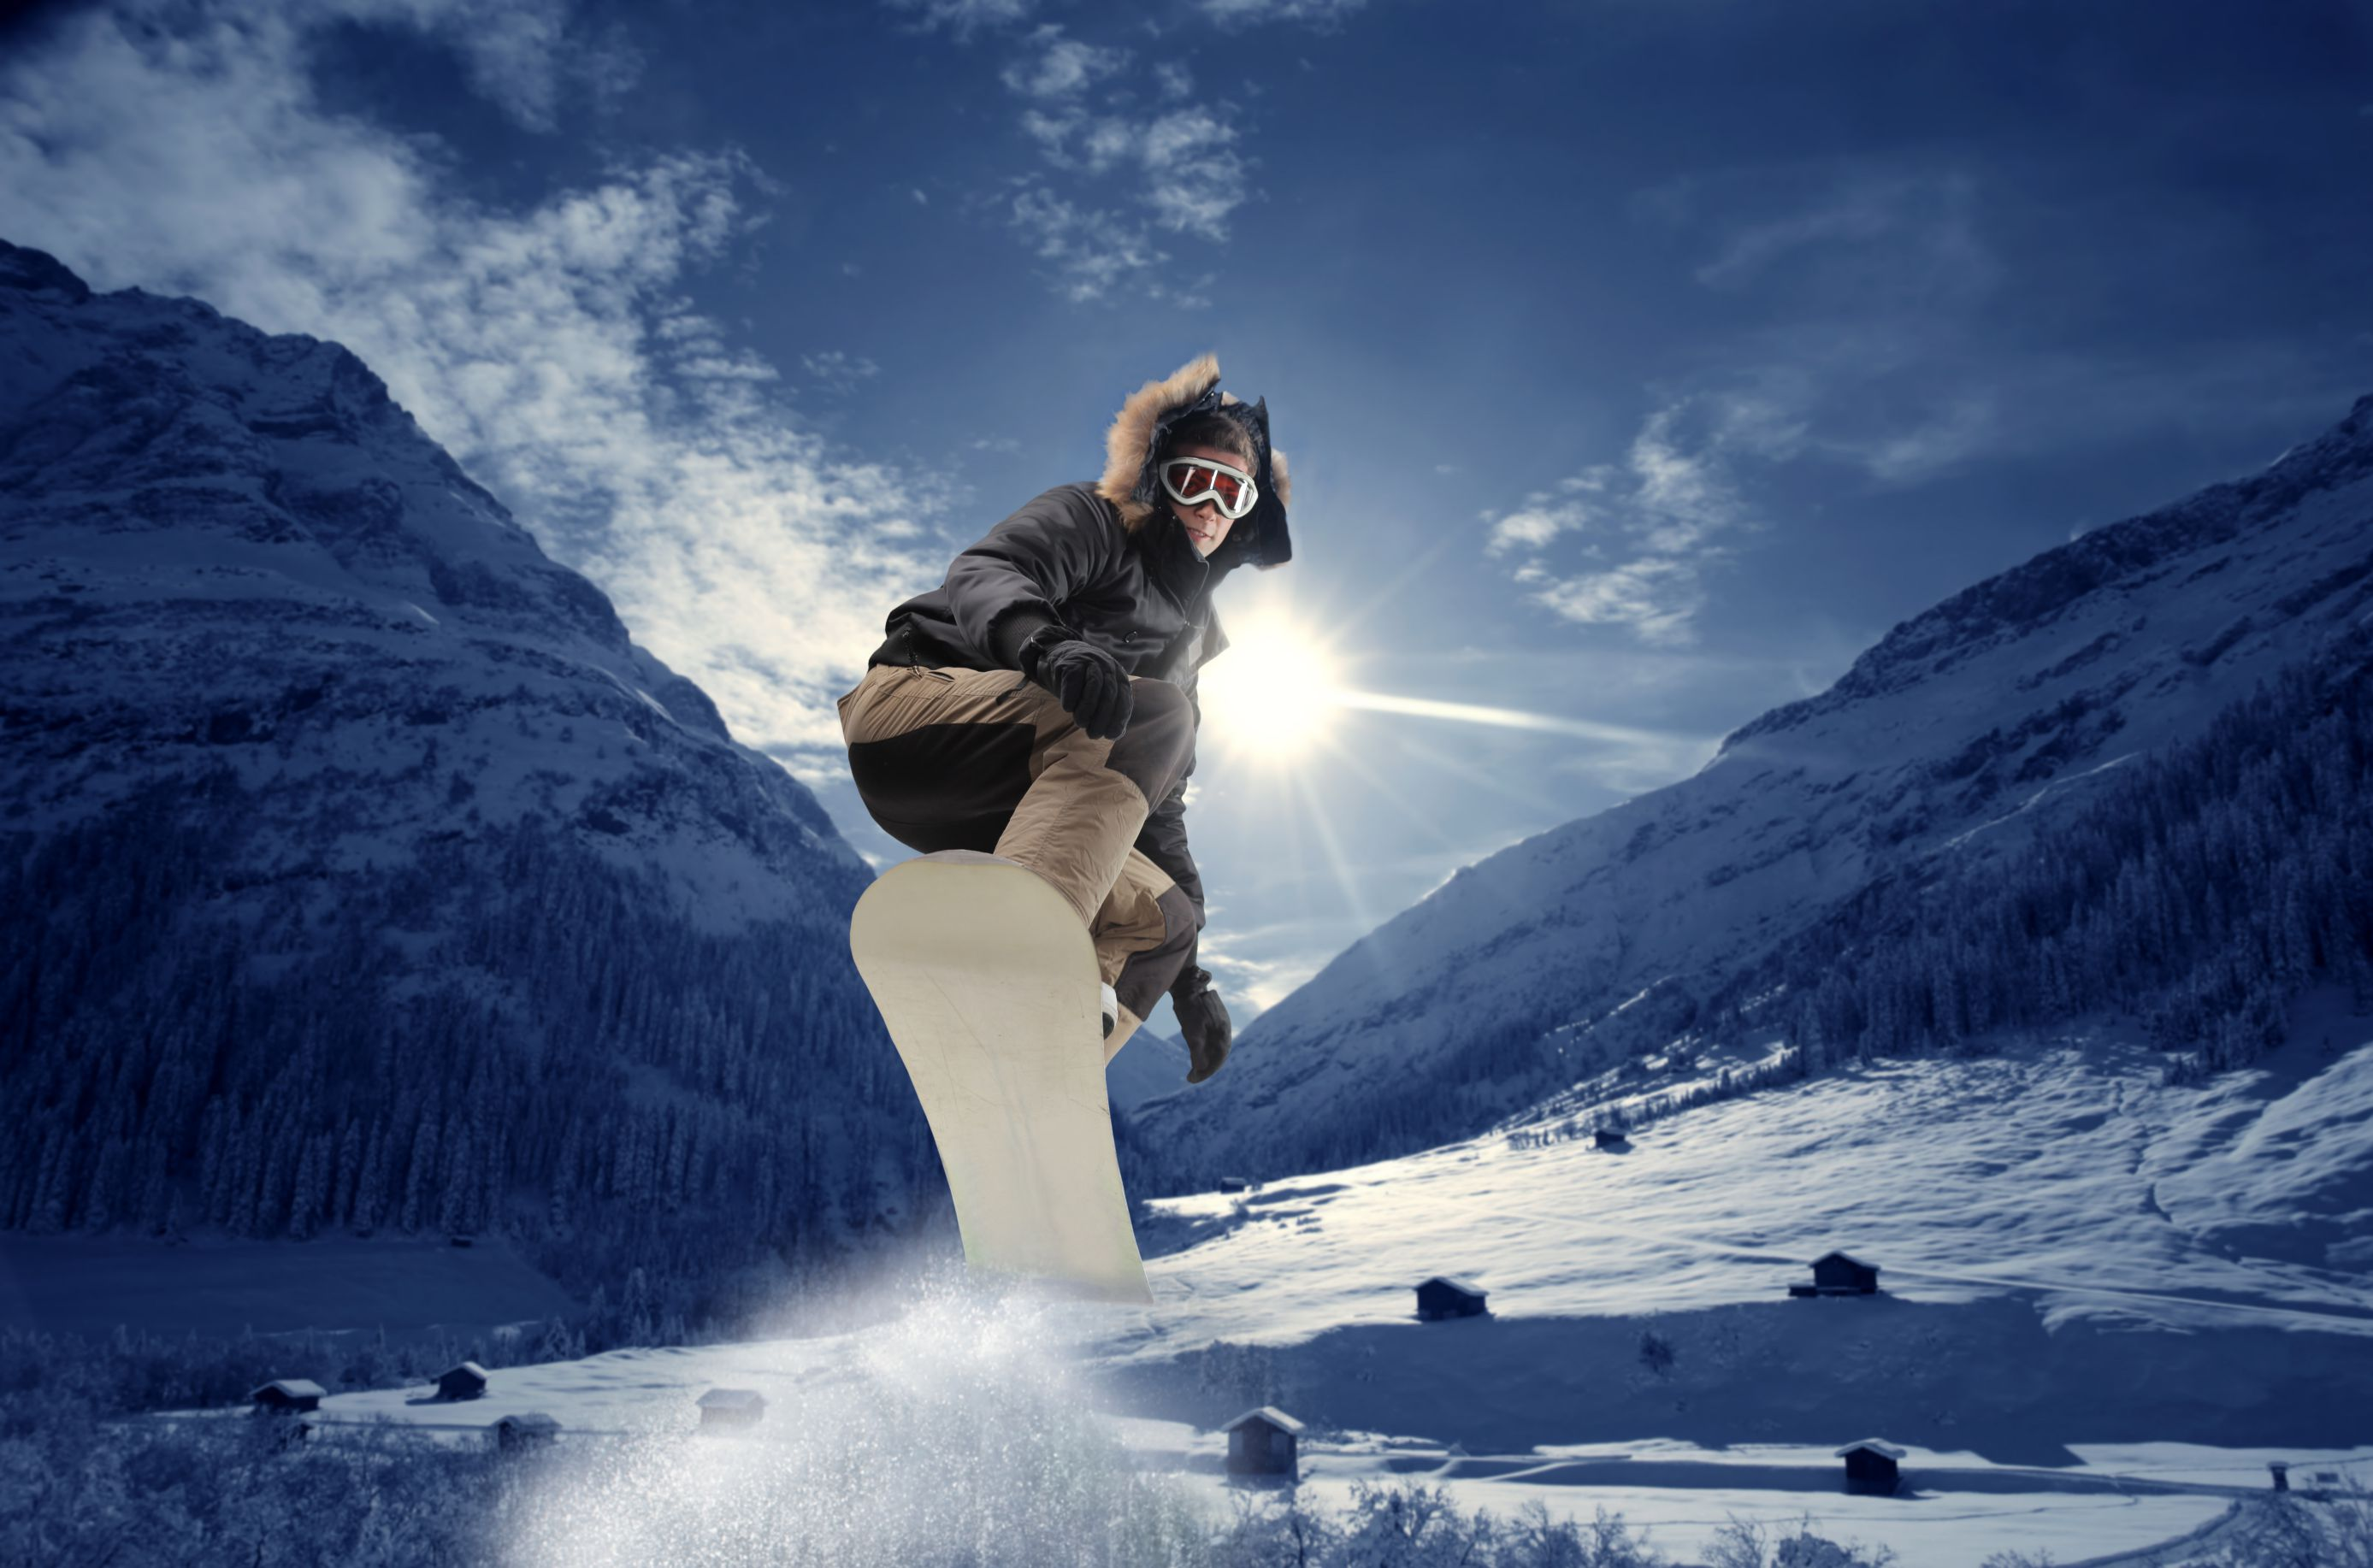 Man on snowboard at the mountain